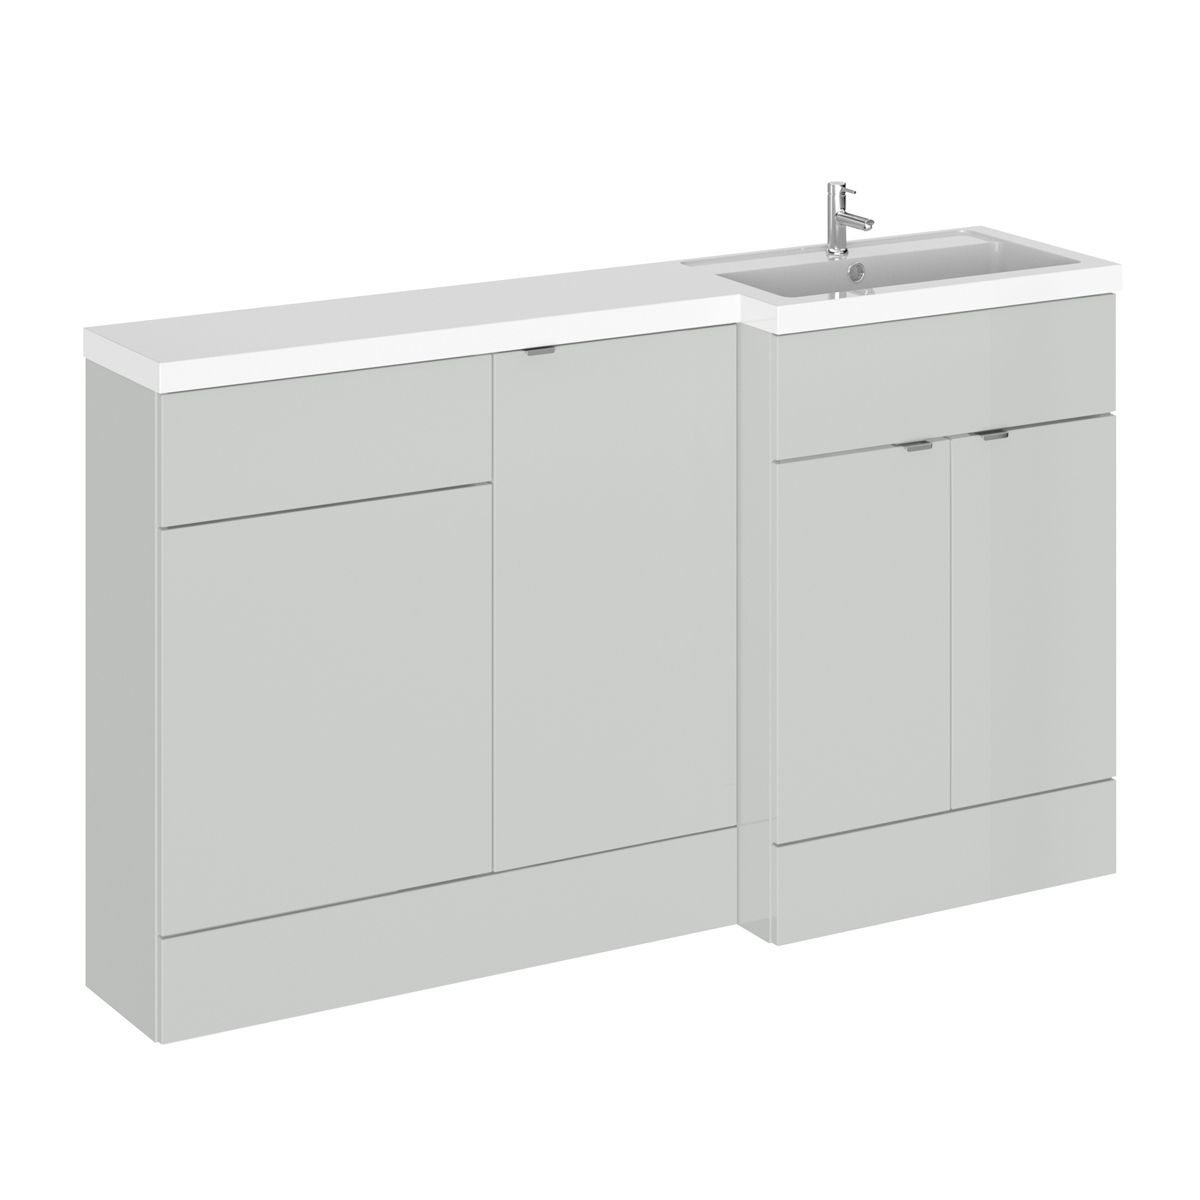 Hudson Reed Fusion Gloss Grey Mist Full Depth Combination Furniture Pack 1500mm Right Hand